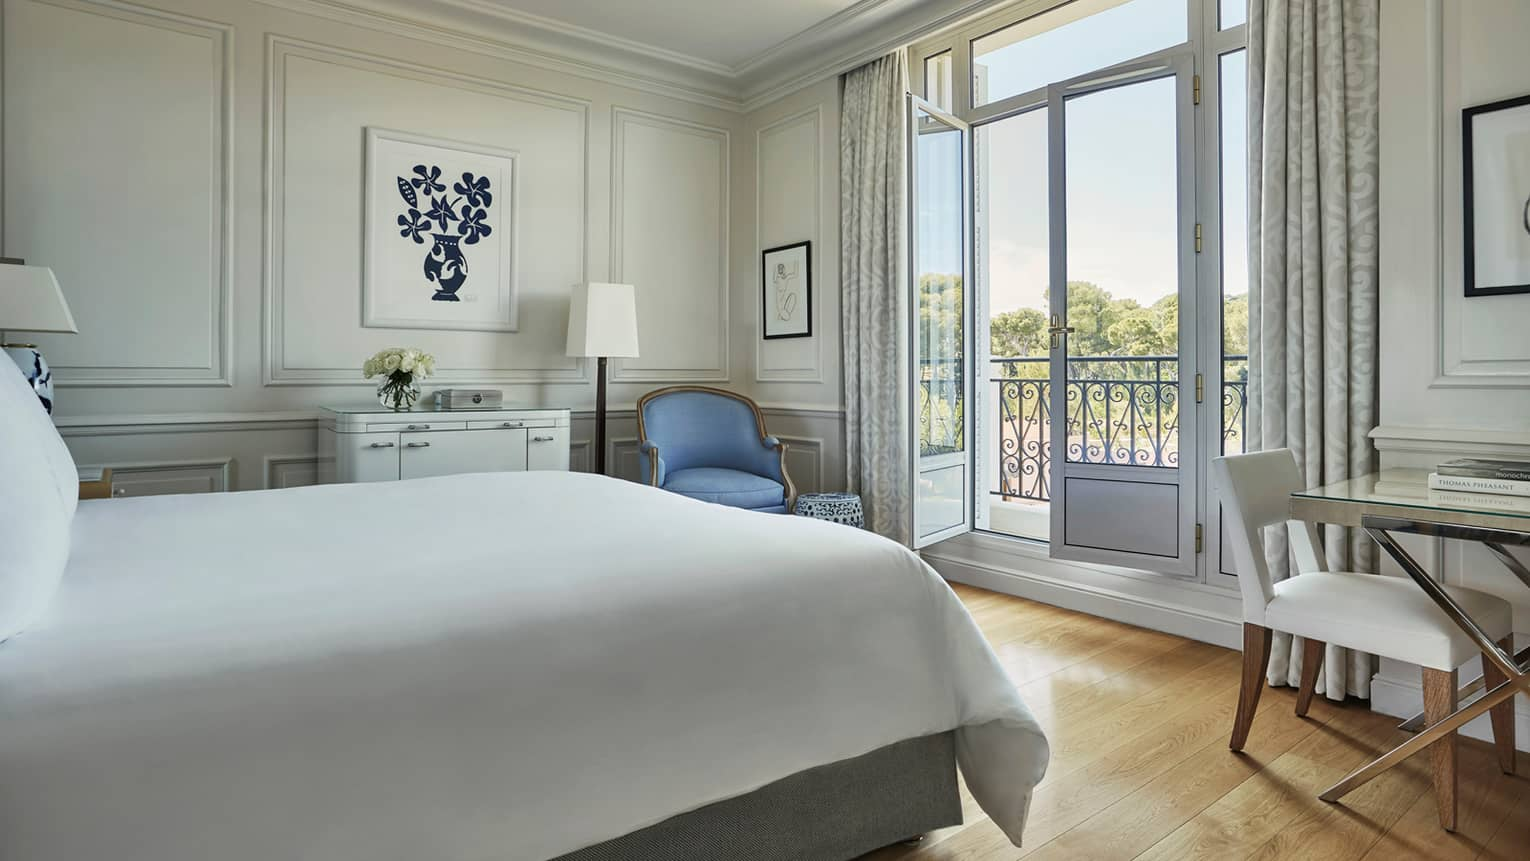 Superior Pinewood Room bed, blue armchair in corner by open French doors to balcony